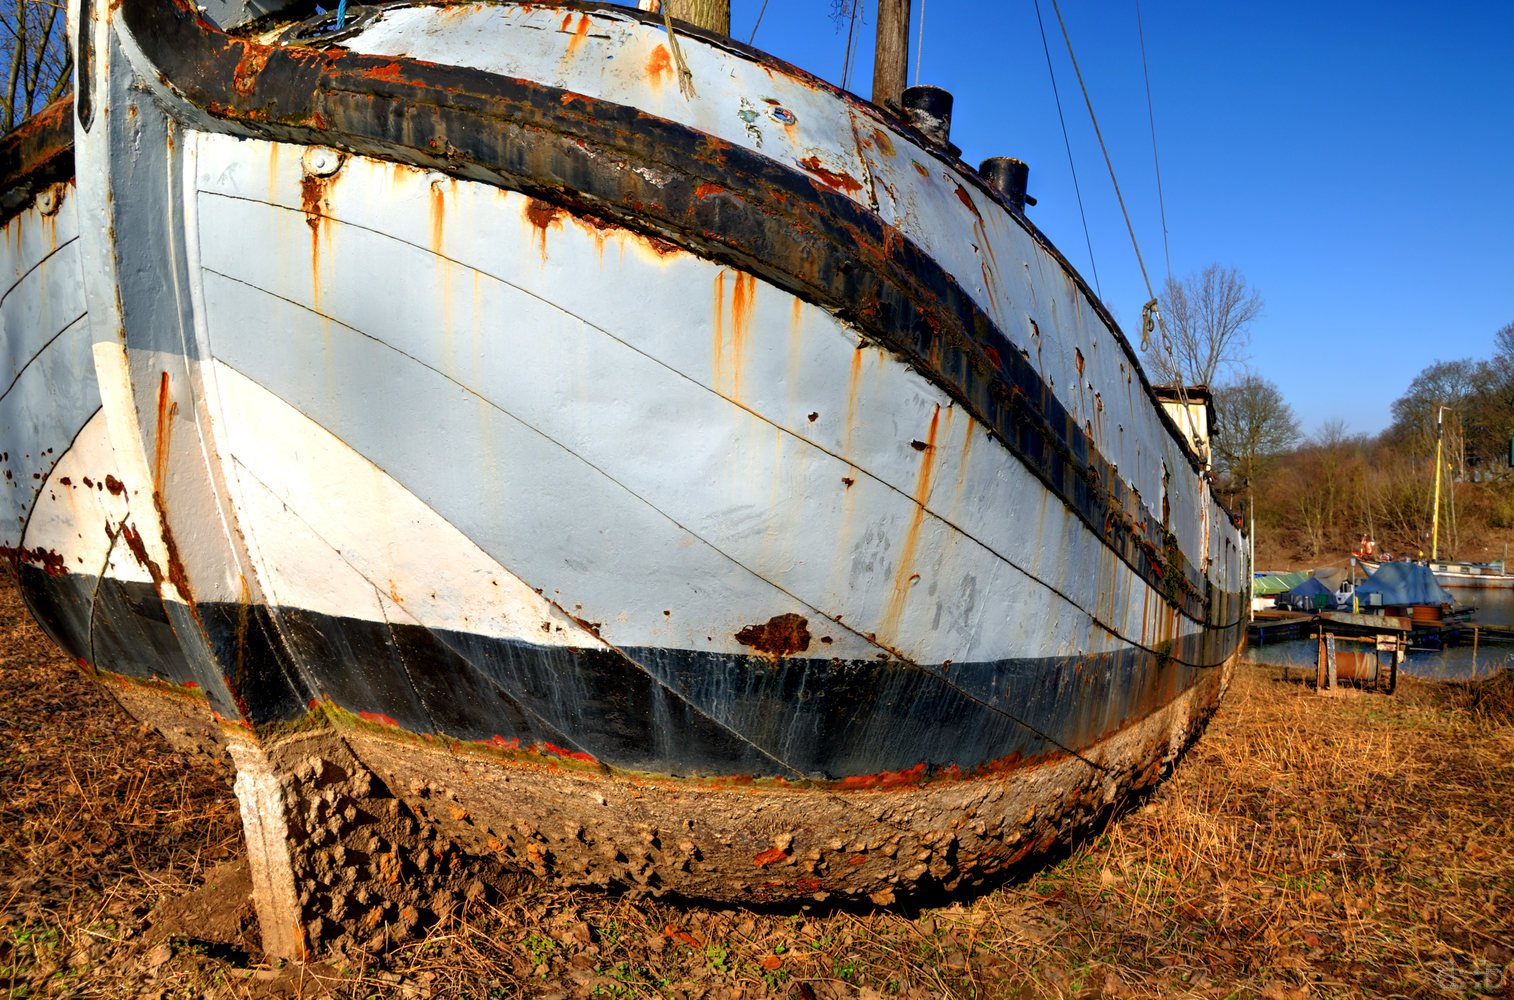 A vintage boat, lying dry outside the harbor.